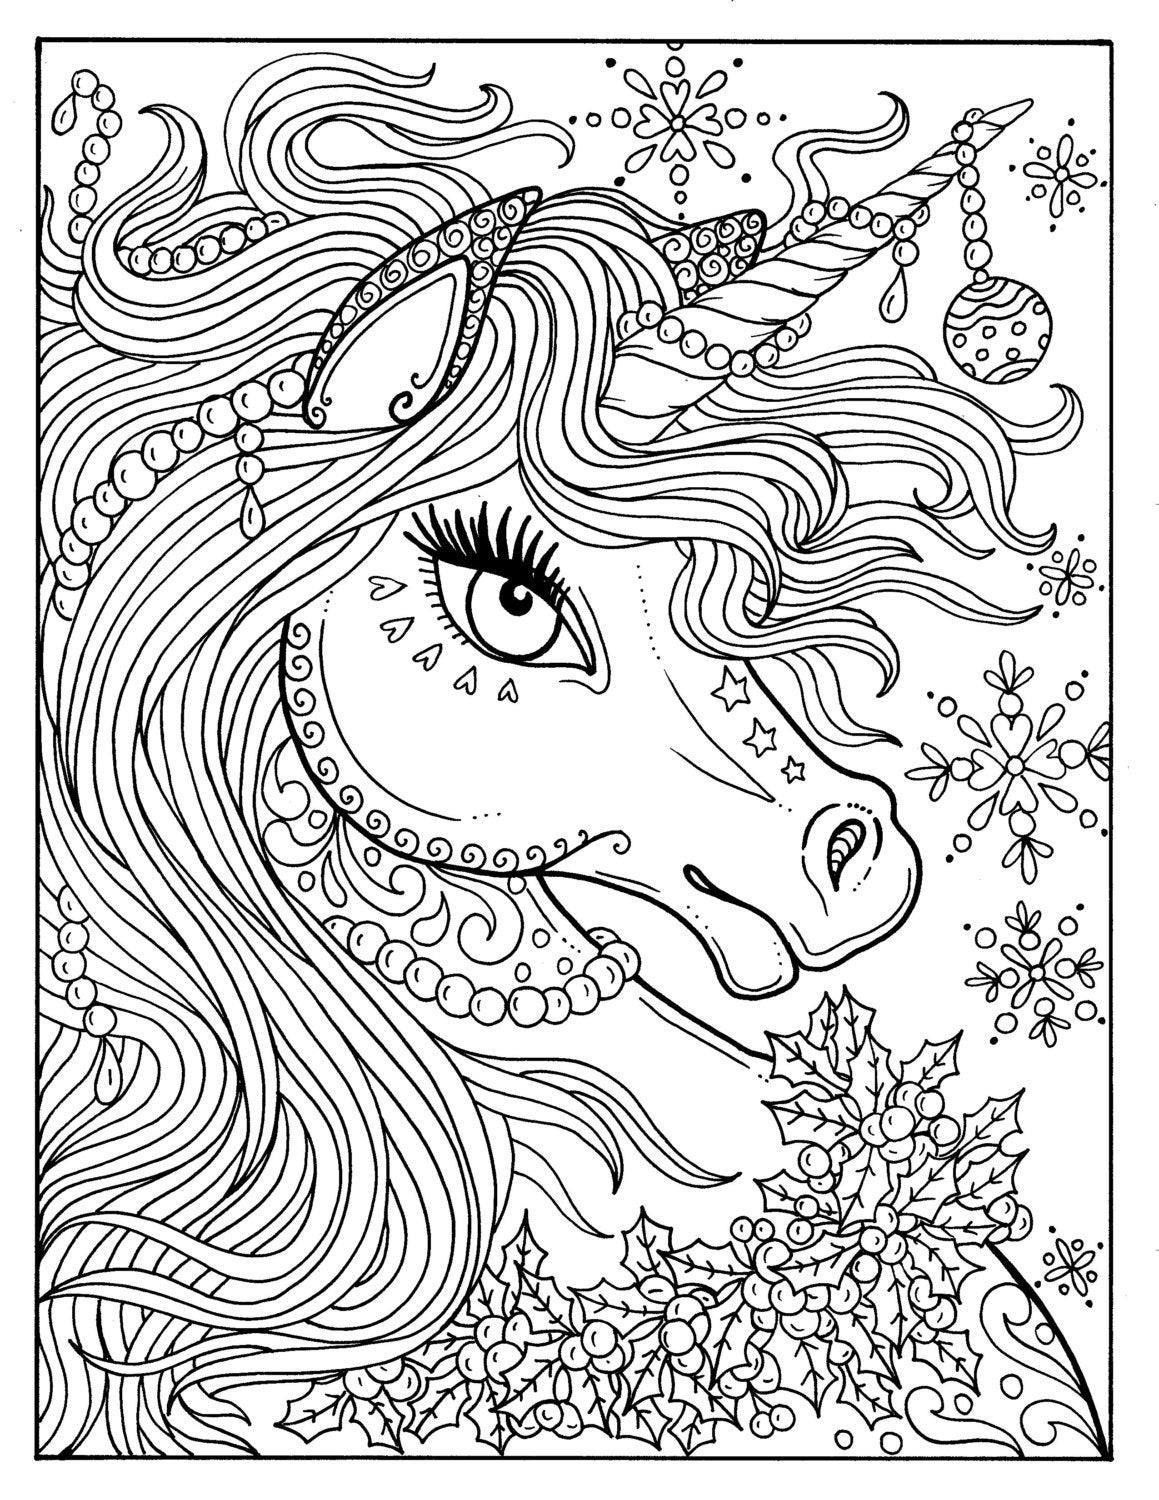 unicorn christmas coloring page color book art fantasy